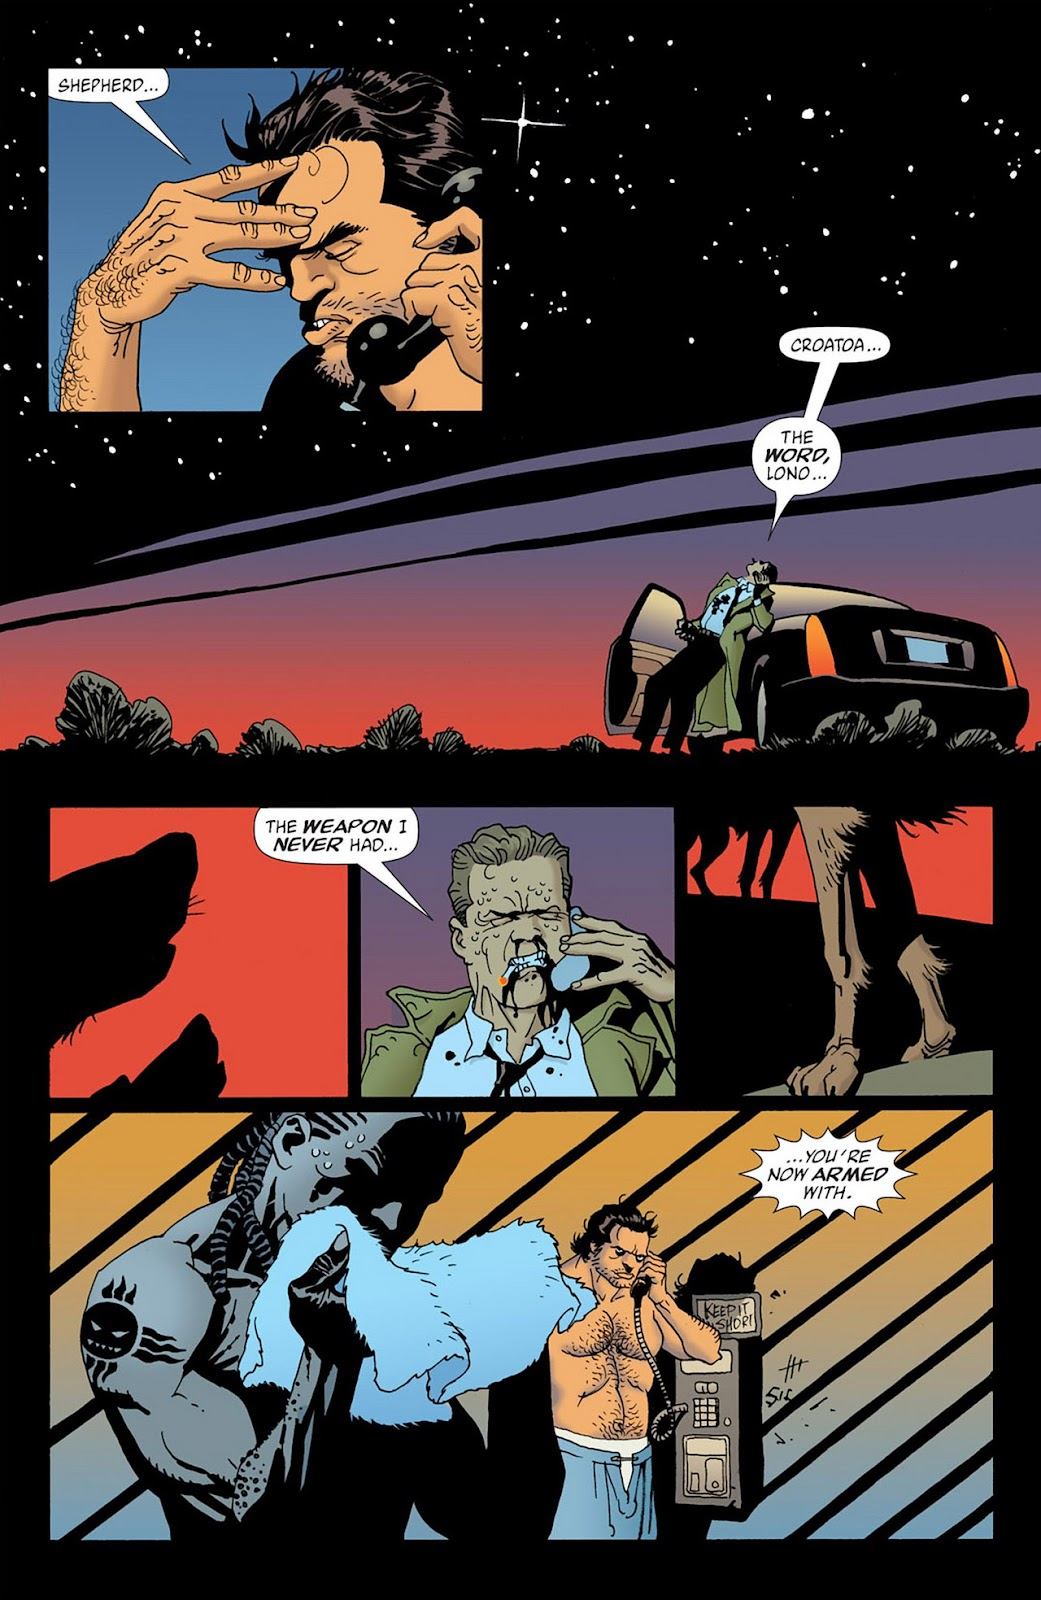 100 Bullets Issue 58 | Read 100 Bullets Issue 58 comic online in high  quality. Read Full Comic online for free - Read comics online in high  quality .